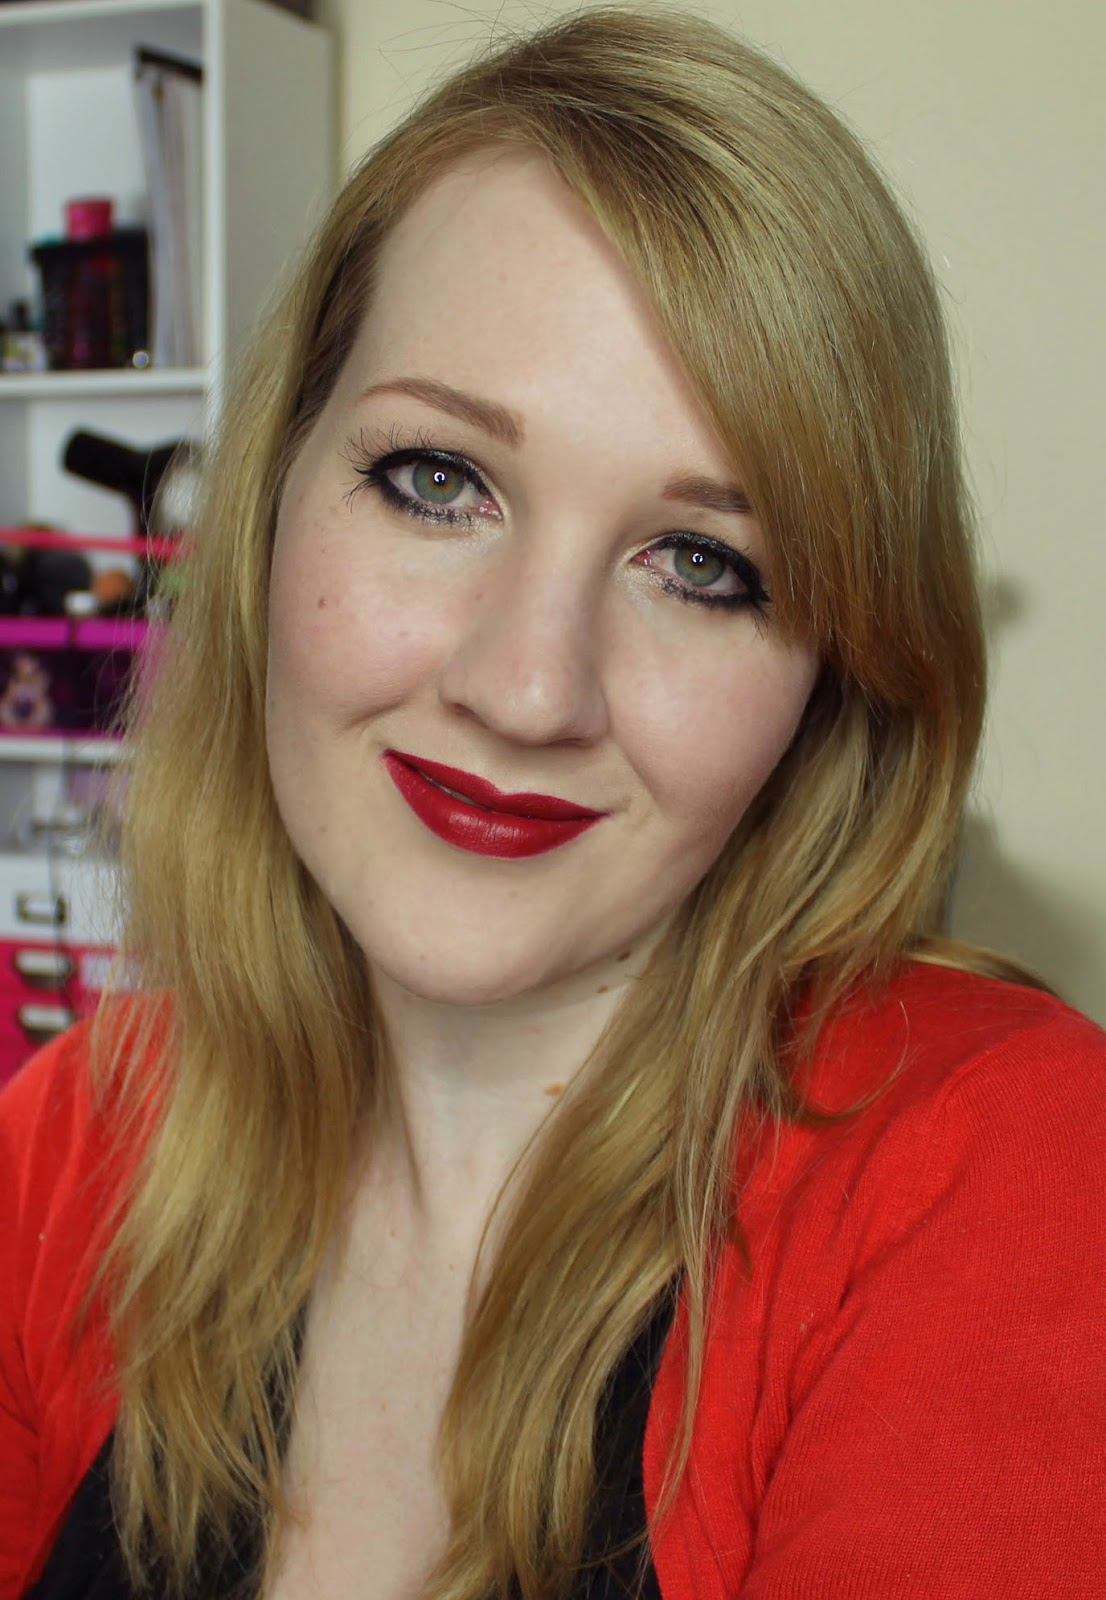 MAC X Rocky Horror Picture Show Lipsticks: Frank-N-Furter Swatches & Review